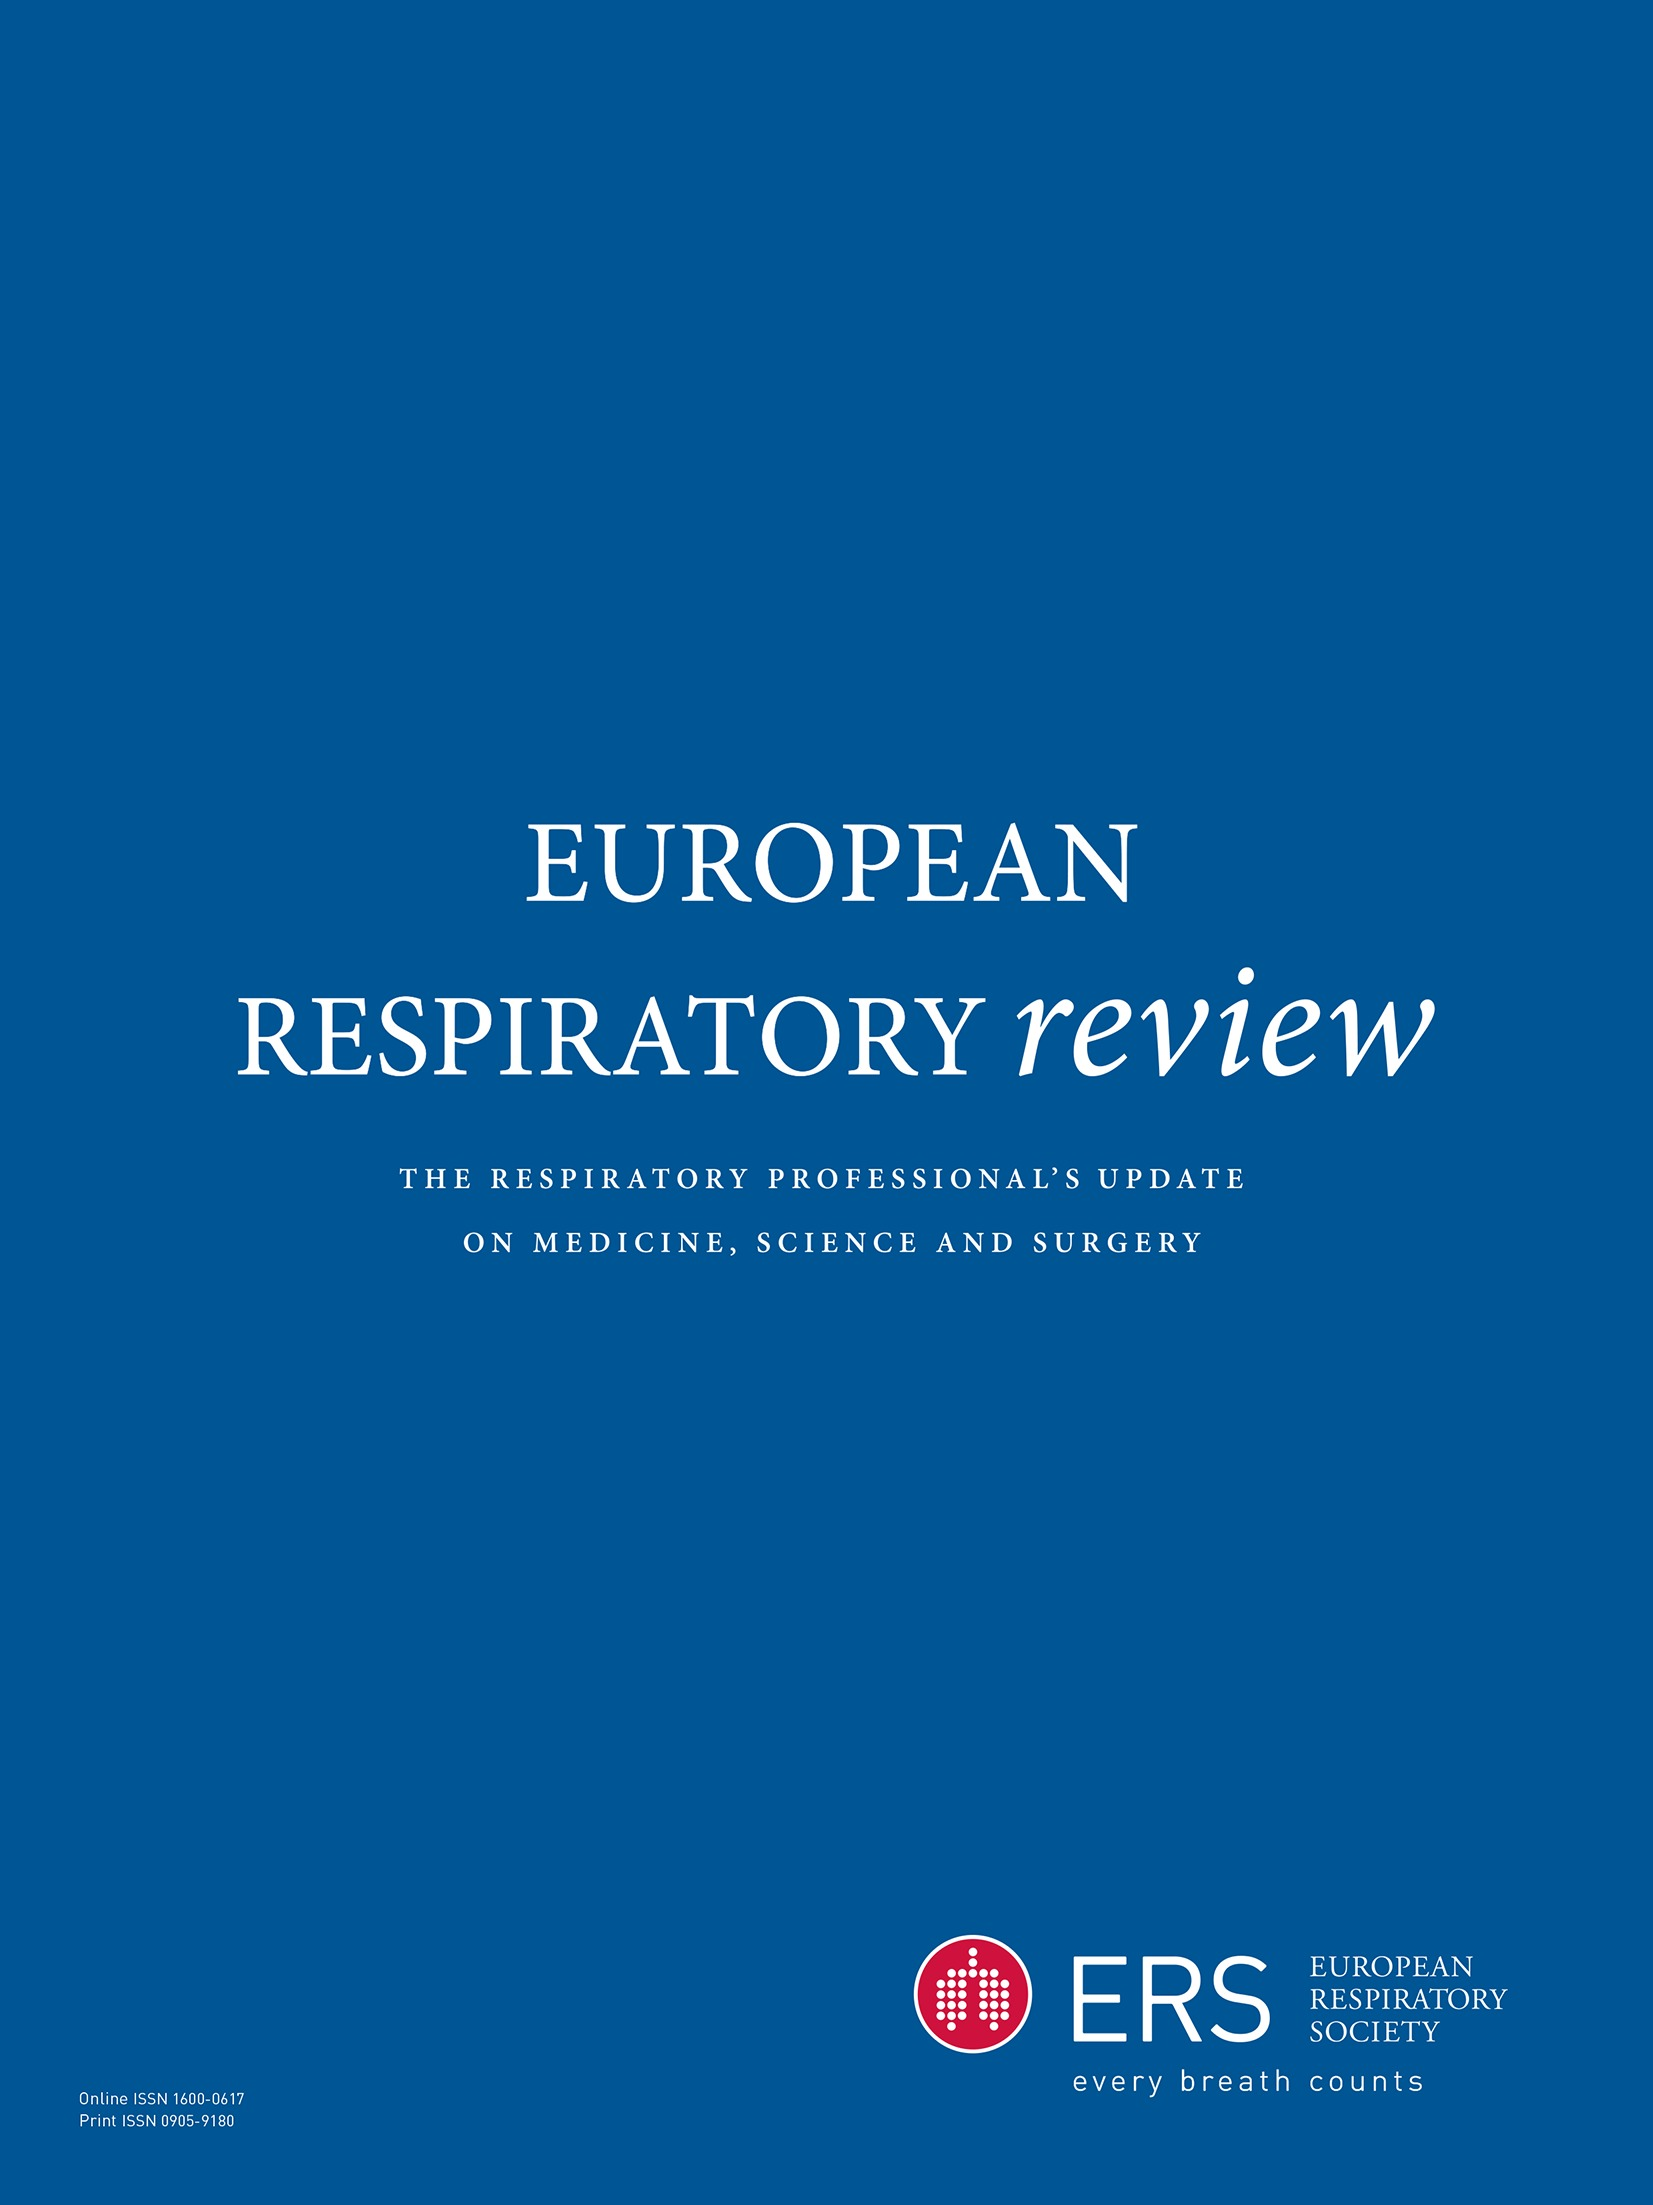 Cardiovascular disease and COPD: dangerous liaisons? | European